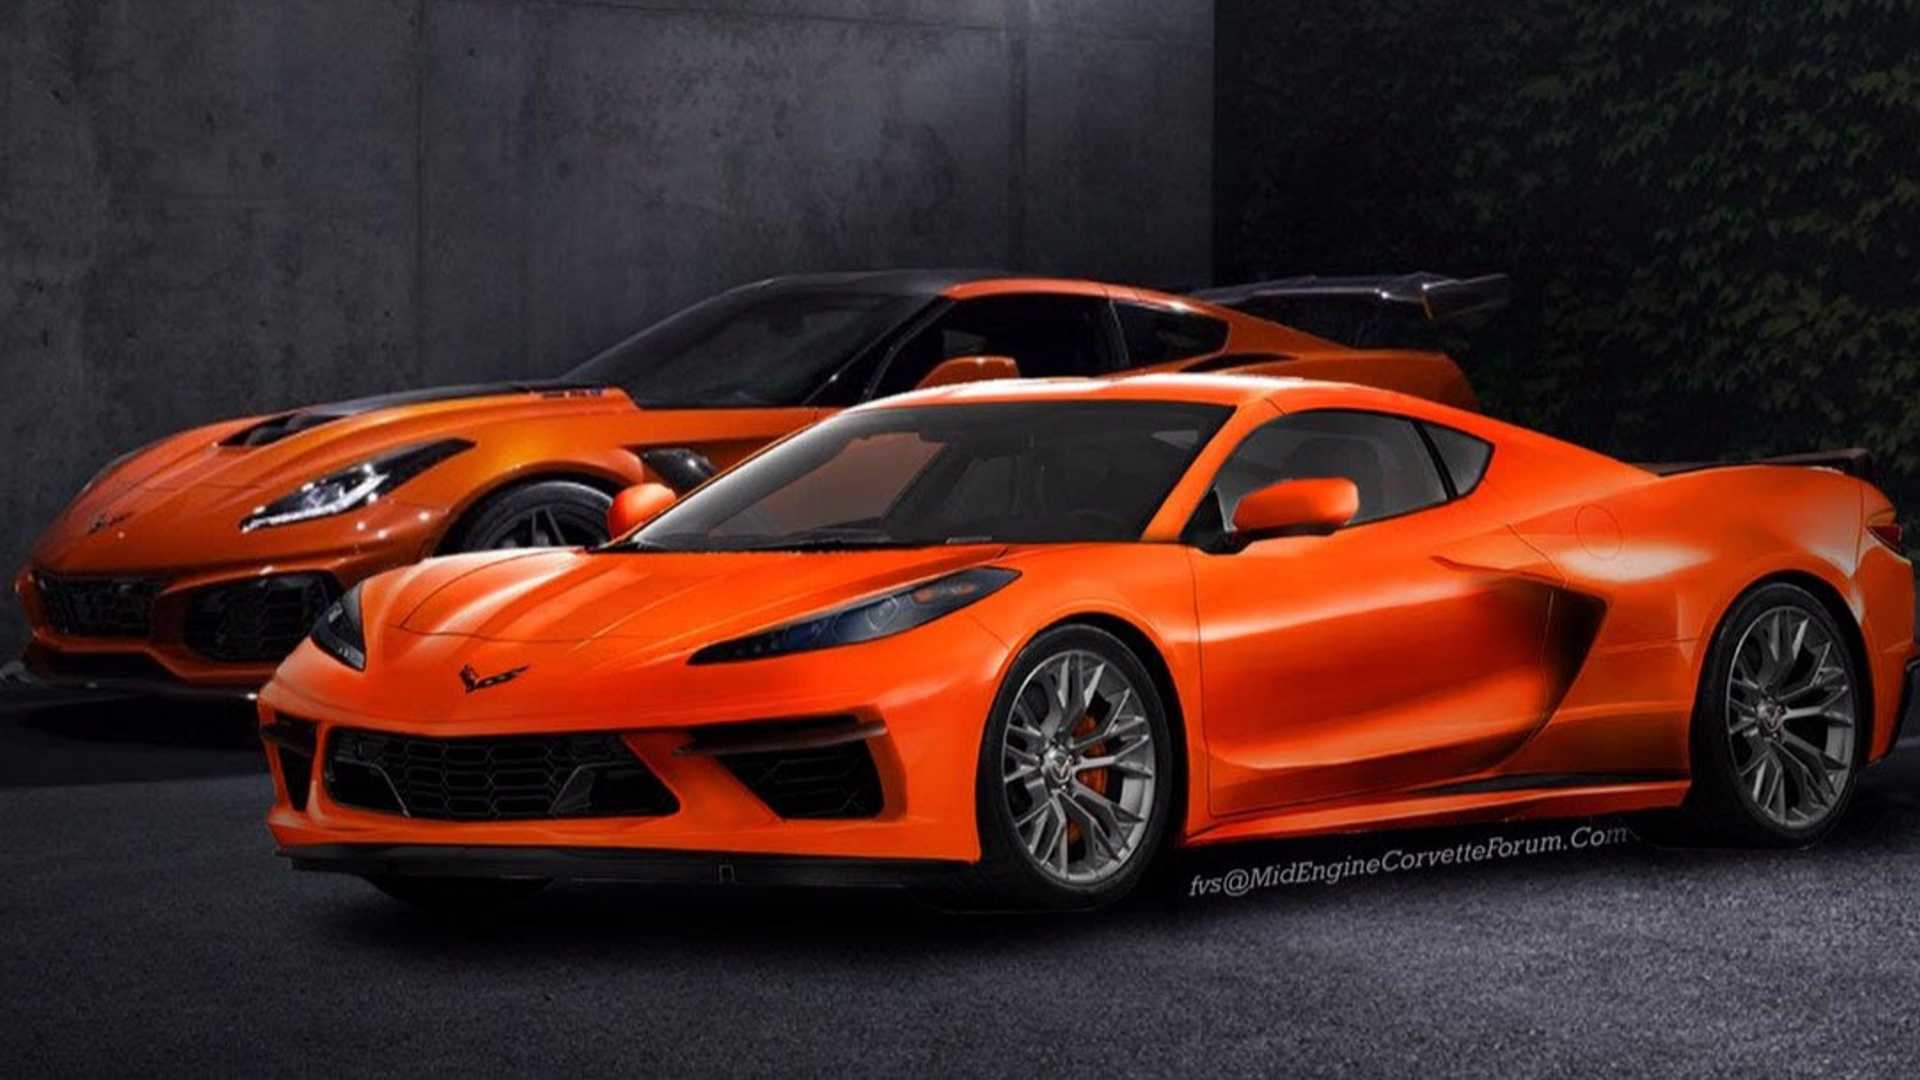 45 The Best 2020 Chevrolet Corvette Zora Zr1 Style